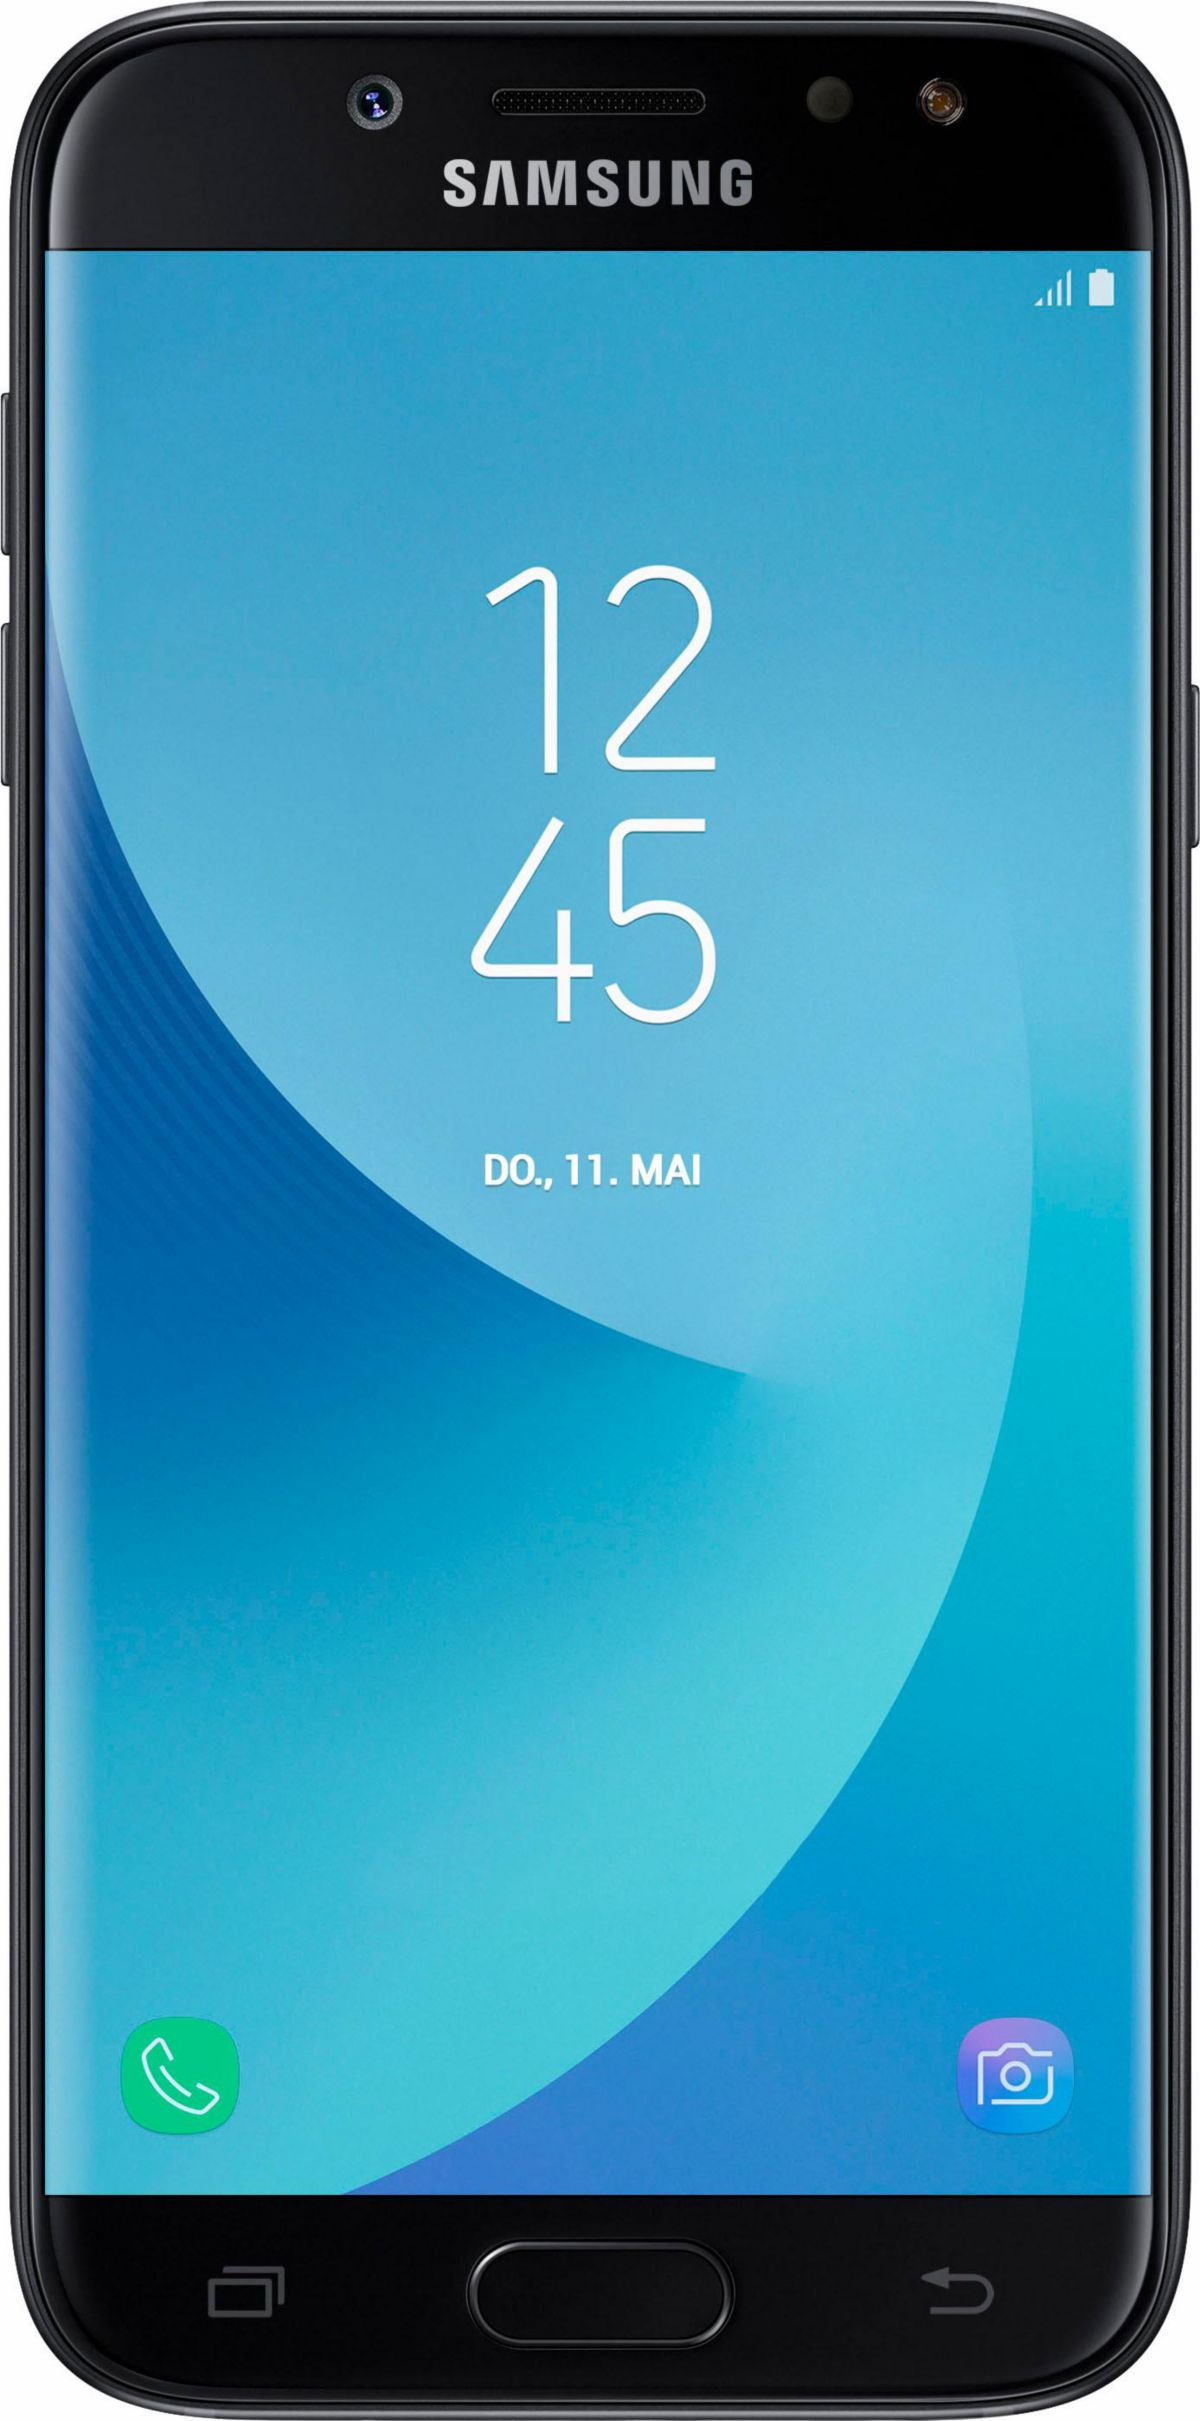 Samsung Galaxy J5 2017 Duos Smartphone 13 2 cm 5 2 Zoll Display LTE 4G Android 7 0